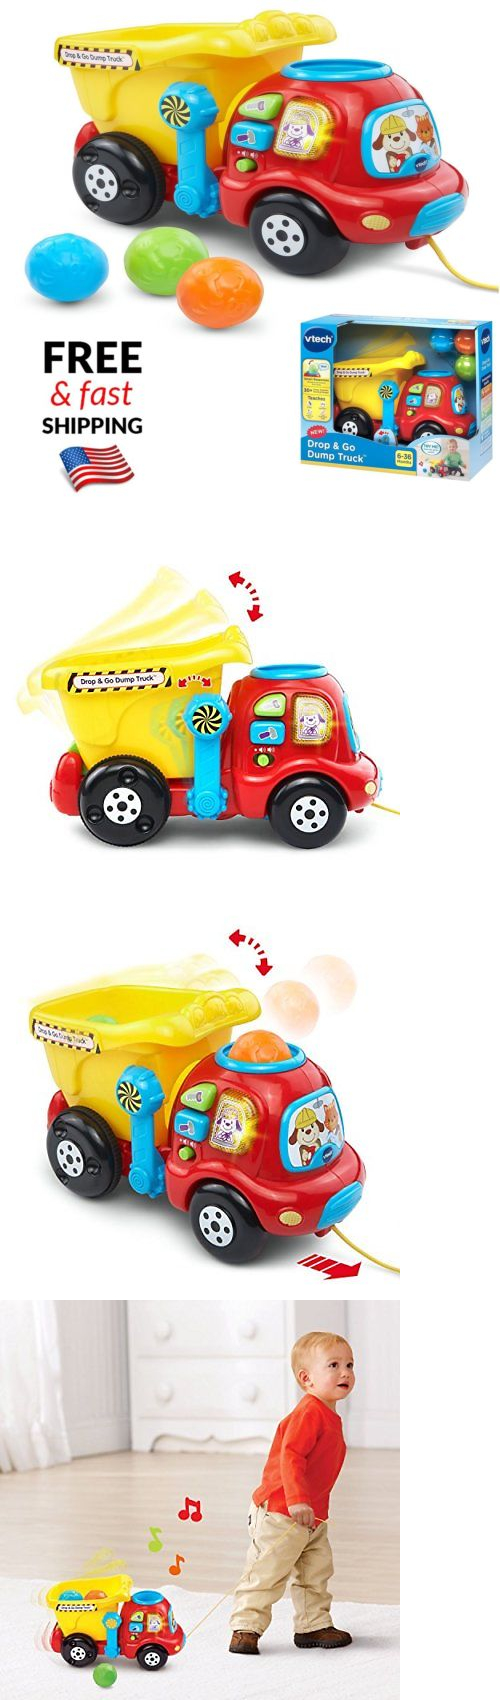 Toys car for baby  baby and kid stuff Toddler Truck Toy Learning Game Play Educational